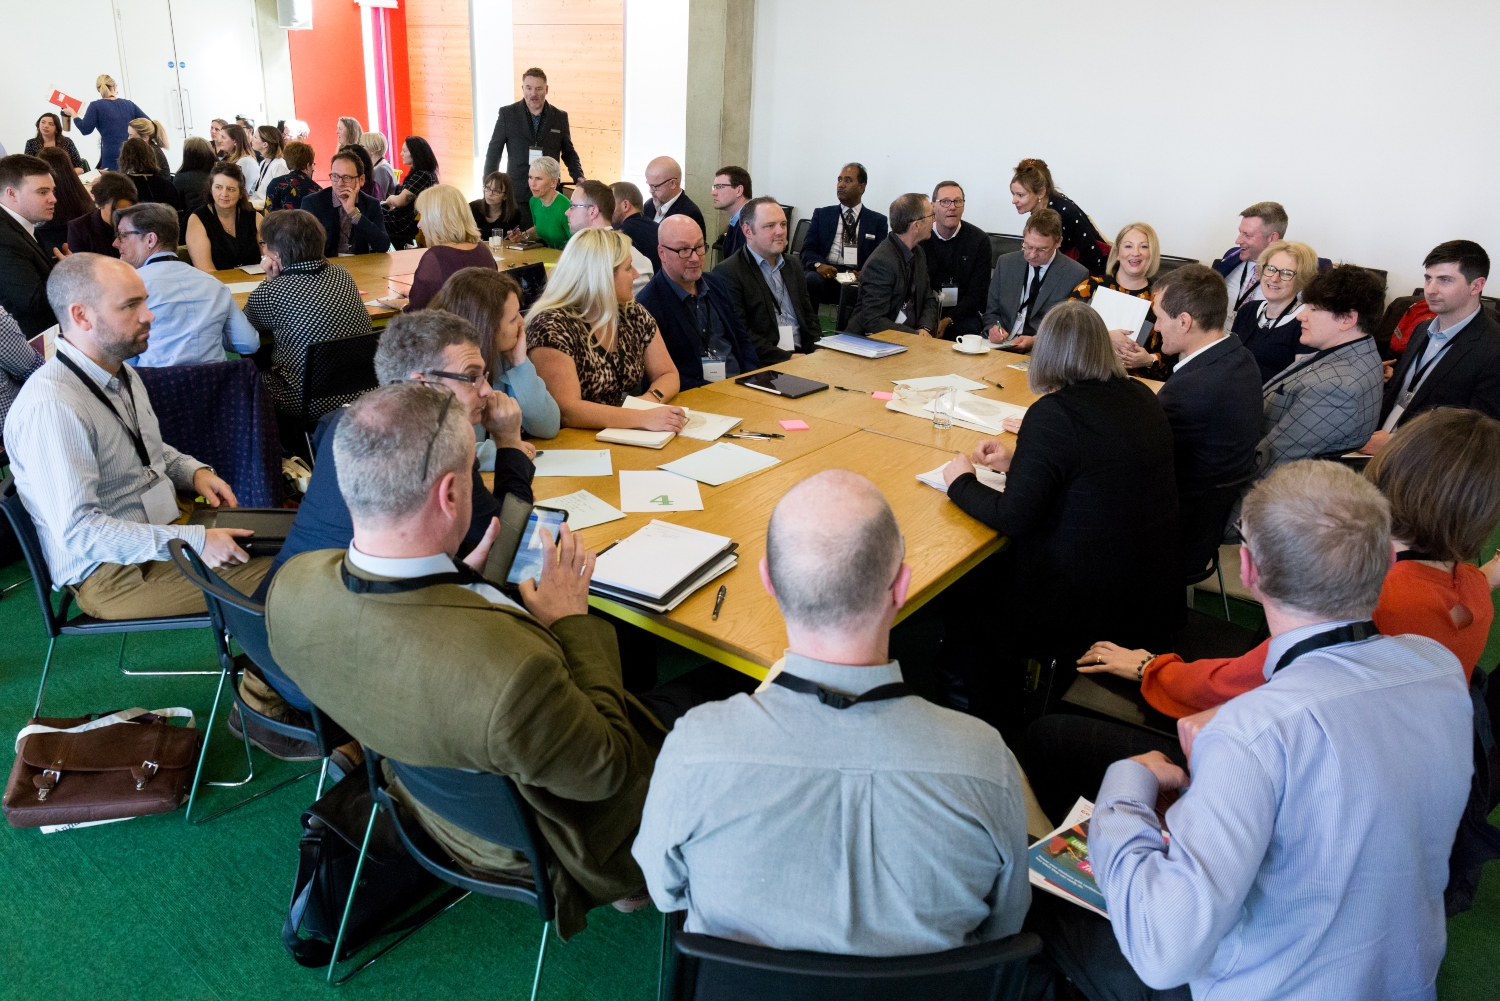 Curriculum leaders at a roundtable discussion